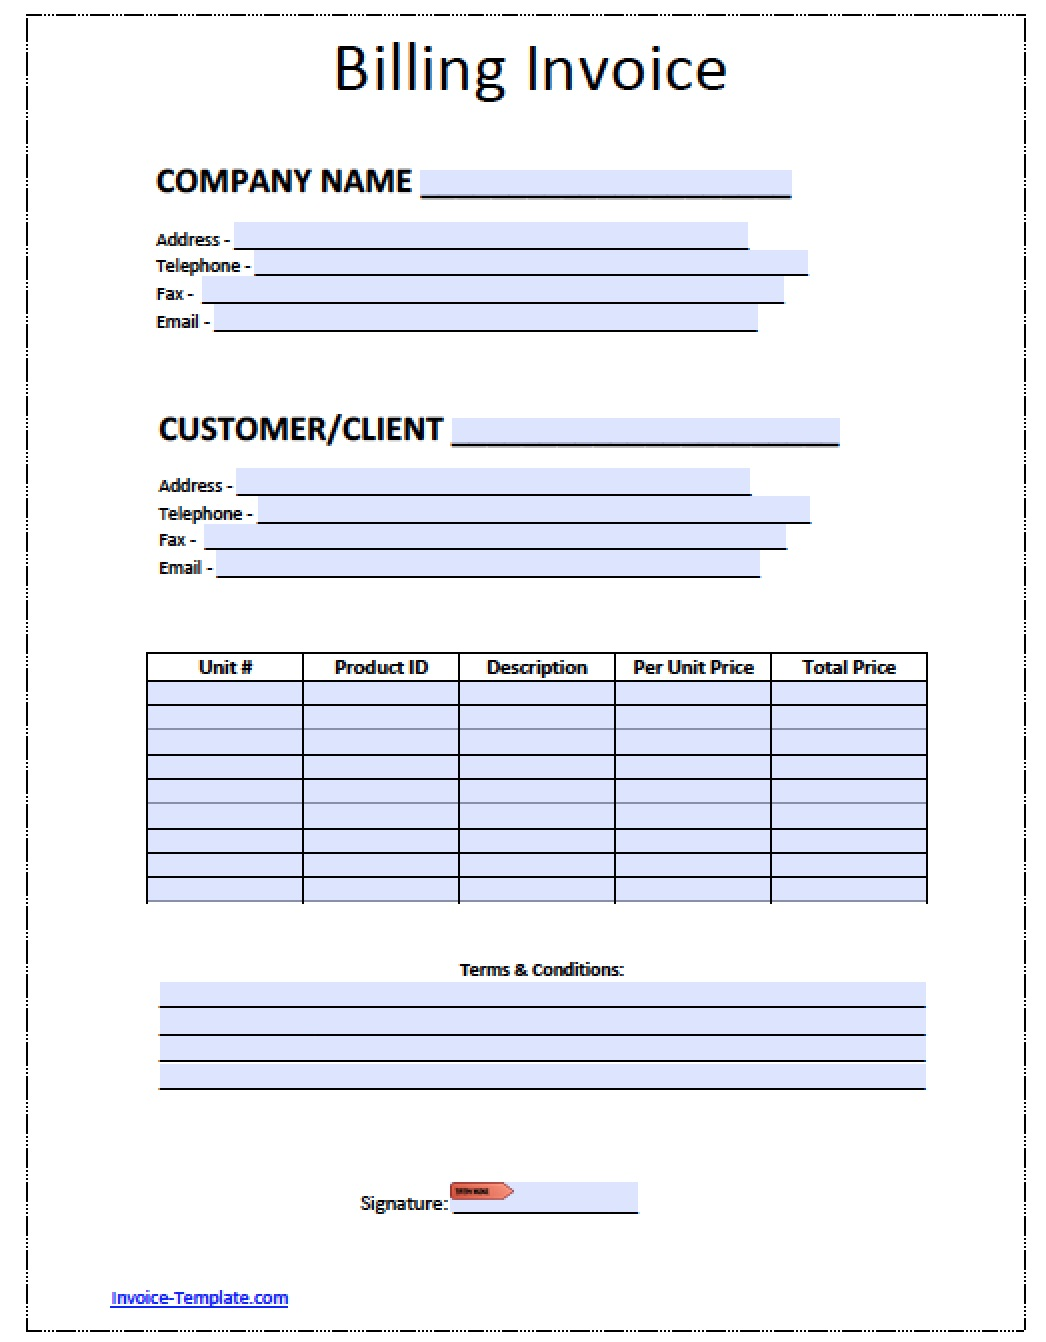 Adoringacklesus  Unique Billing Invoice Invoices Faq U Cloudflare Support Billing  With Licious Free Billing Invoice Template  Excel  Pdf  Word Doc  Billing With Charming Proforma Invoice For Customs Also Proforma Invoice Word In Addition Invoiced Sales And Dot Net Invoice As Well As Do I Need An Abn To Invoice Additionally Microsoft Word Invoice Template  From Happytomco With Adoringacklesus  Licious Billing Invoice Invoices Faq U Cloudflare Support Billing  With Charming Free Billing Invoice Template  Excel  Pdf  Word Doc  Billing And Unique Proforma Invoice For Customs Also Proforma Invoice Word In Addition Invoiced Sales From Happytomco